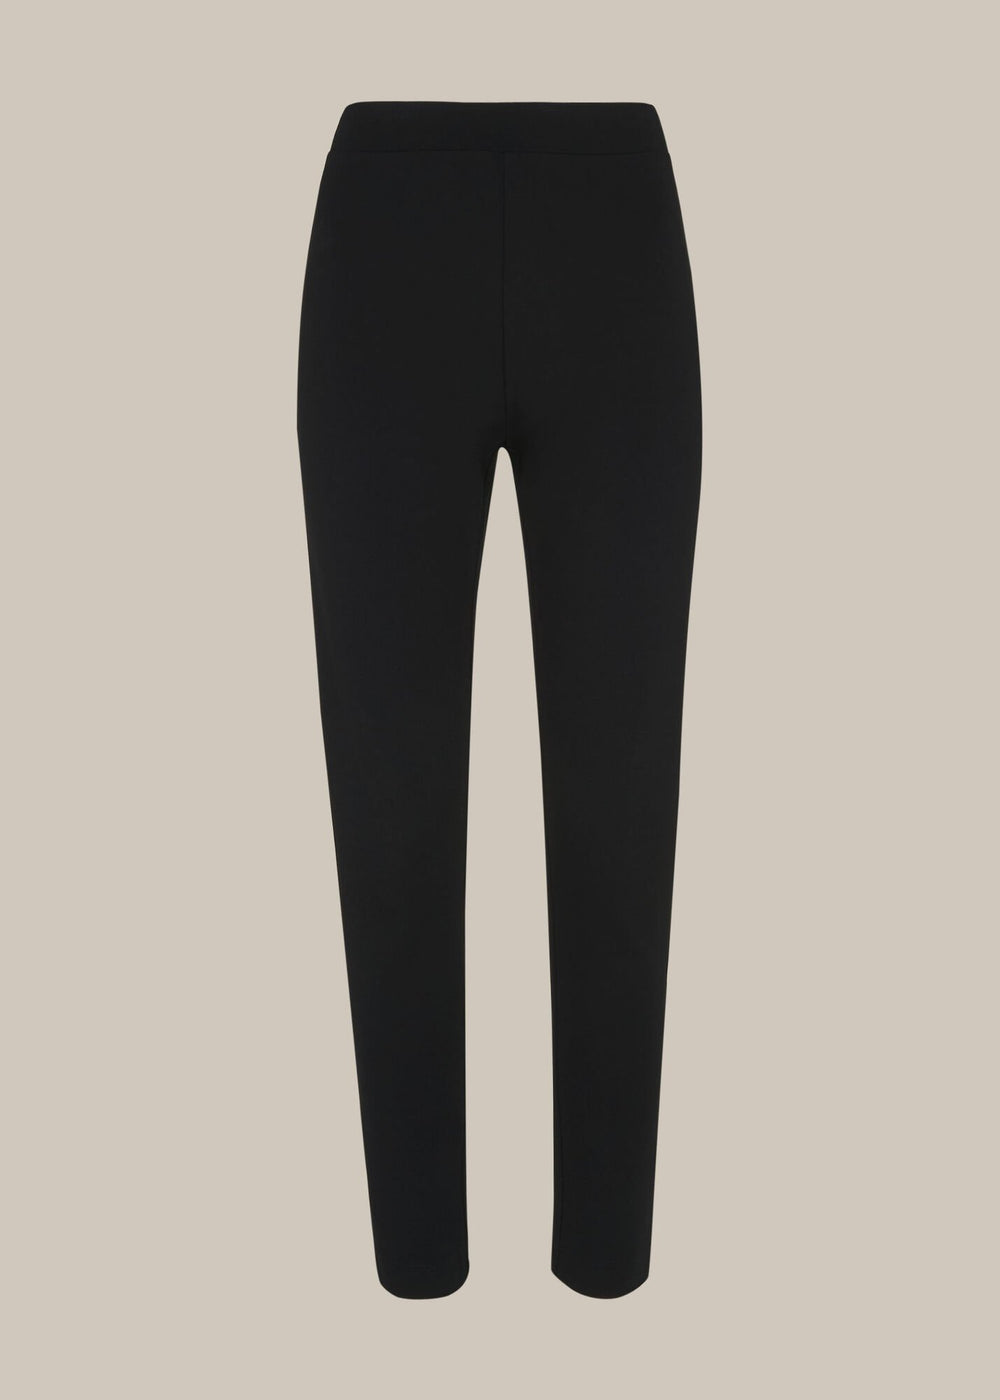 Whistles Essential Slim Legging